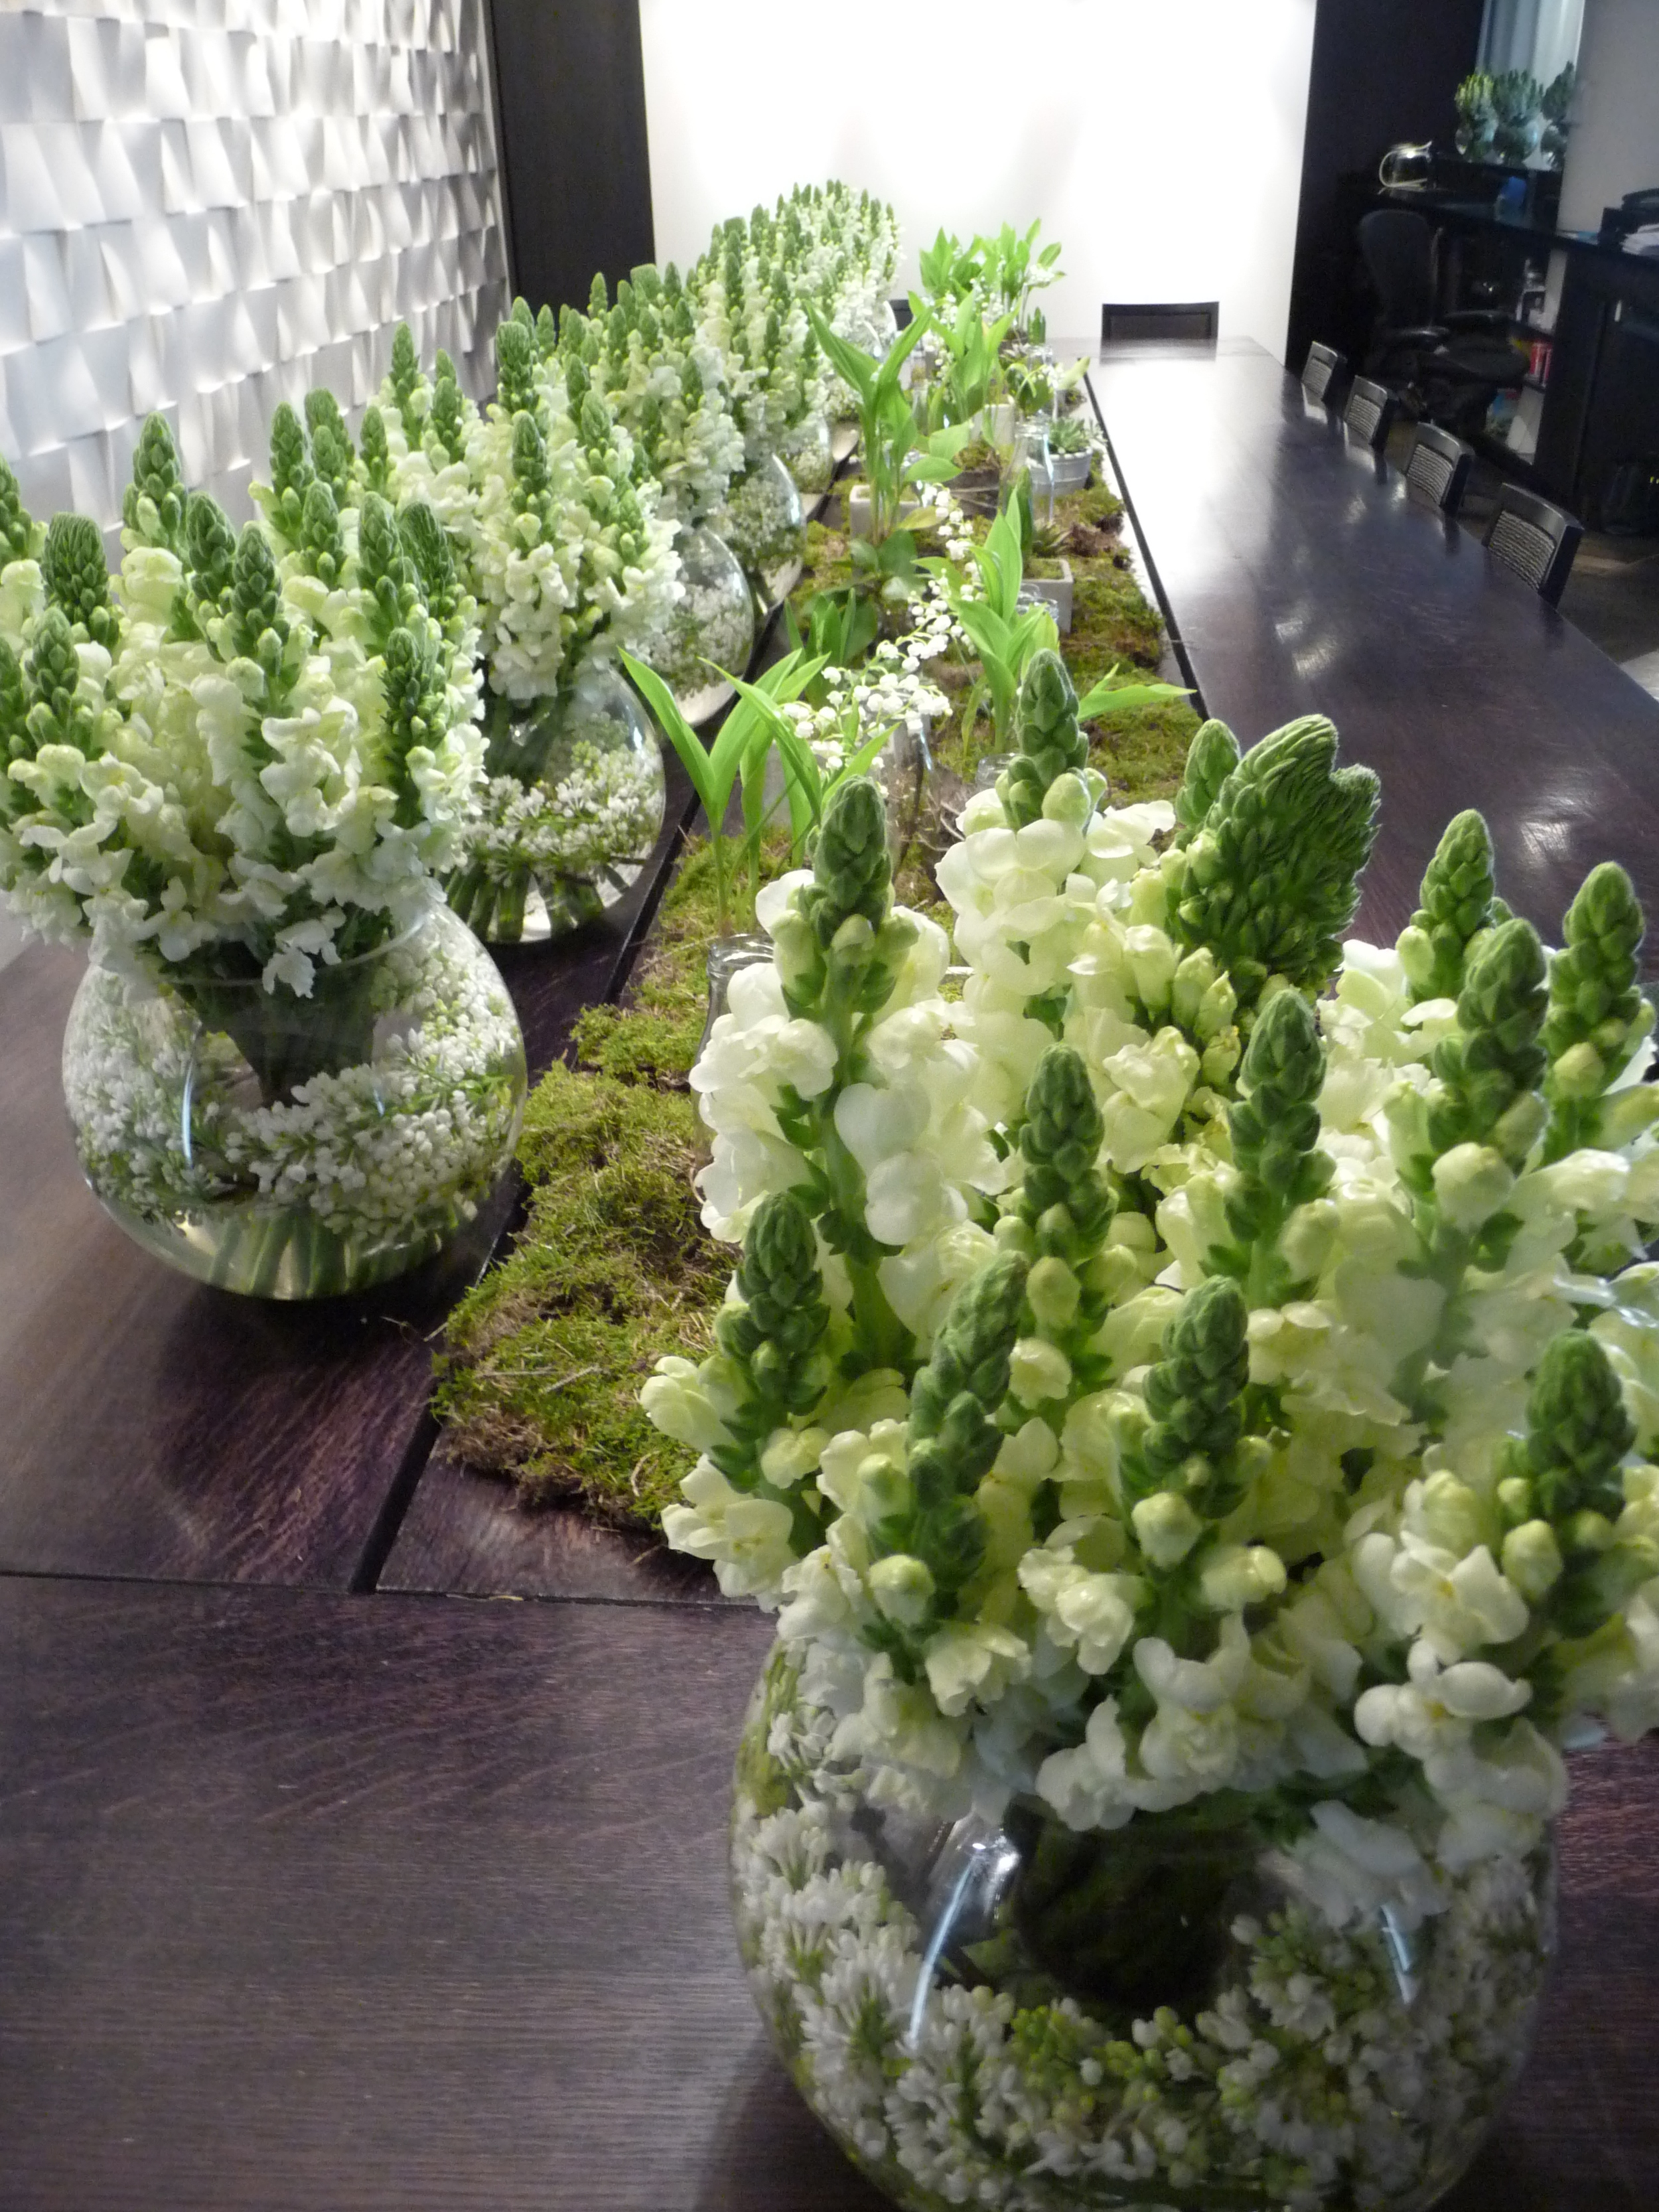 This long table display of flowers is absolutely amazing. White lilac is wrapped around the inside of each vase. There were small jars with succulent plants in them. One colour arrangements are always more impactful